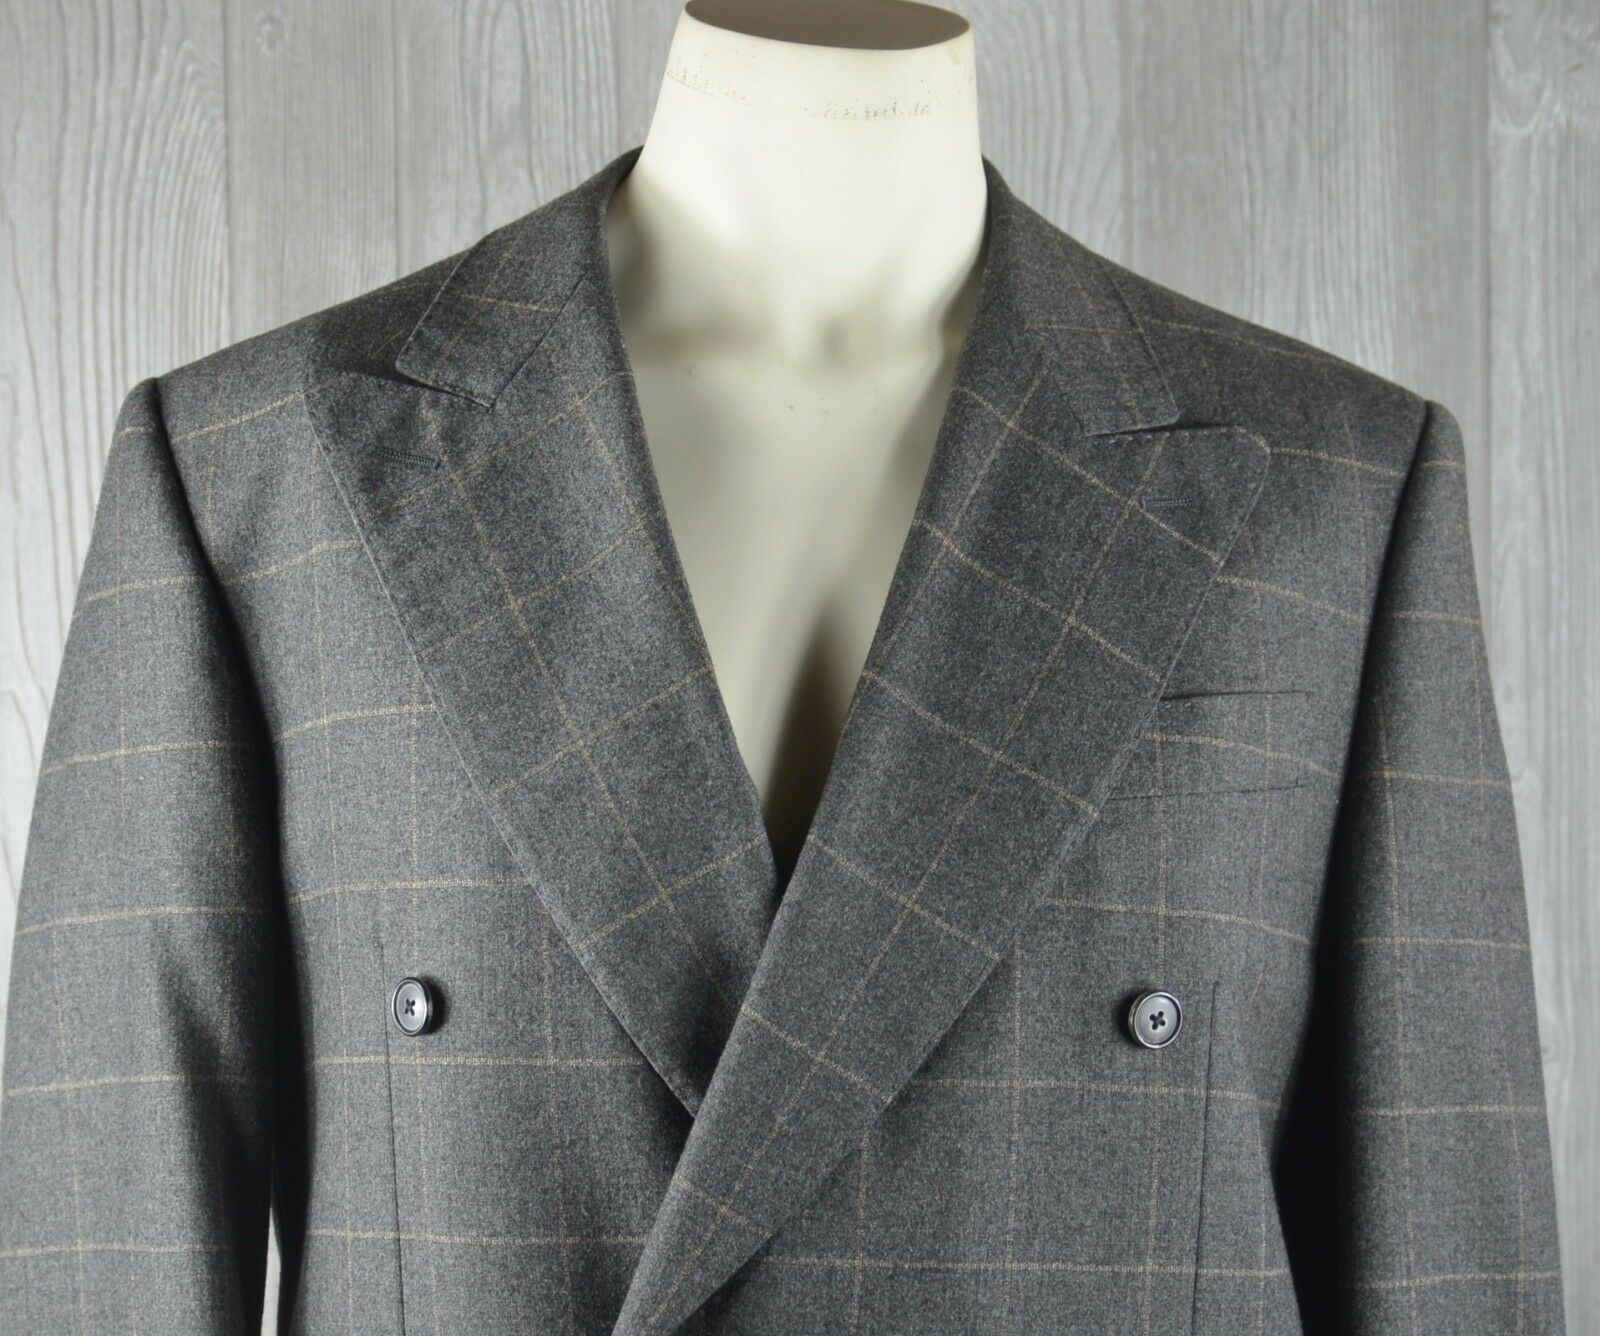 Dei Giovani Lgold Piana Men's 40-32 Double Breasted 2 Piece Suit Wool Cashmere